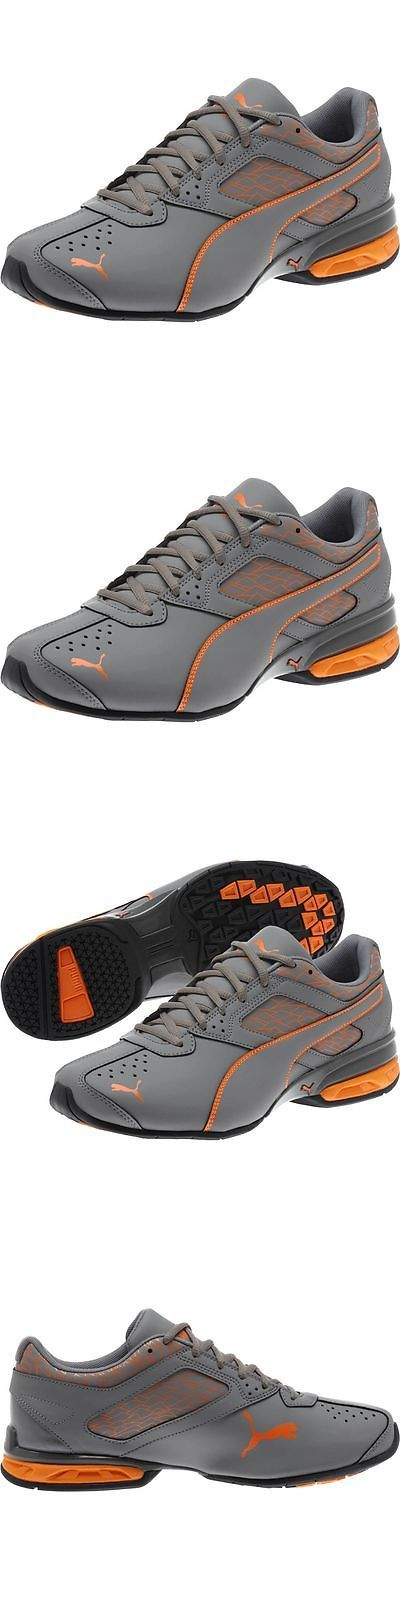 Men Shoes: Puma Tazon 6 Fracture Men S Running Shoes -> BUY IT NOW ONLY: $70 on eBay!